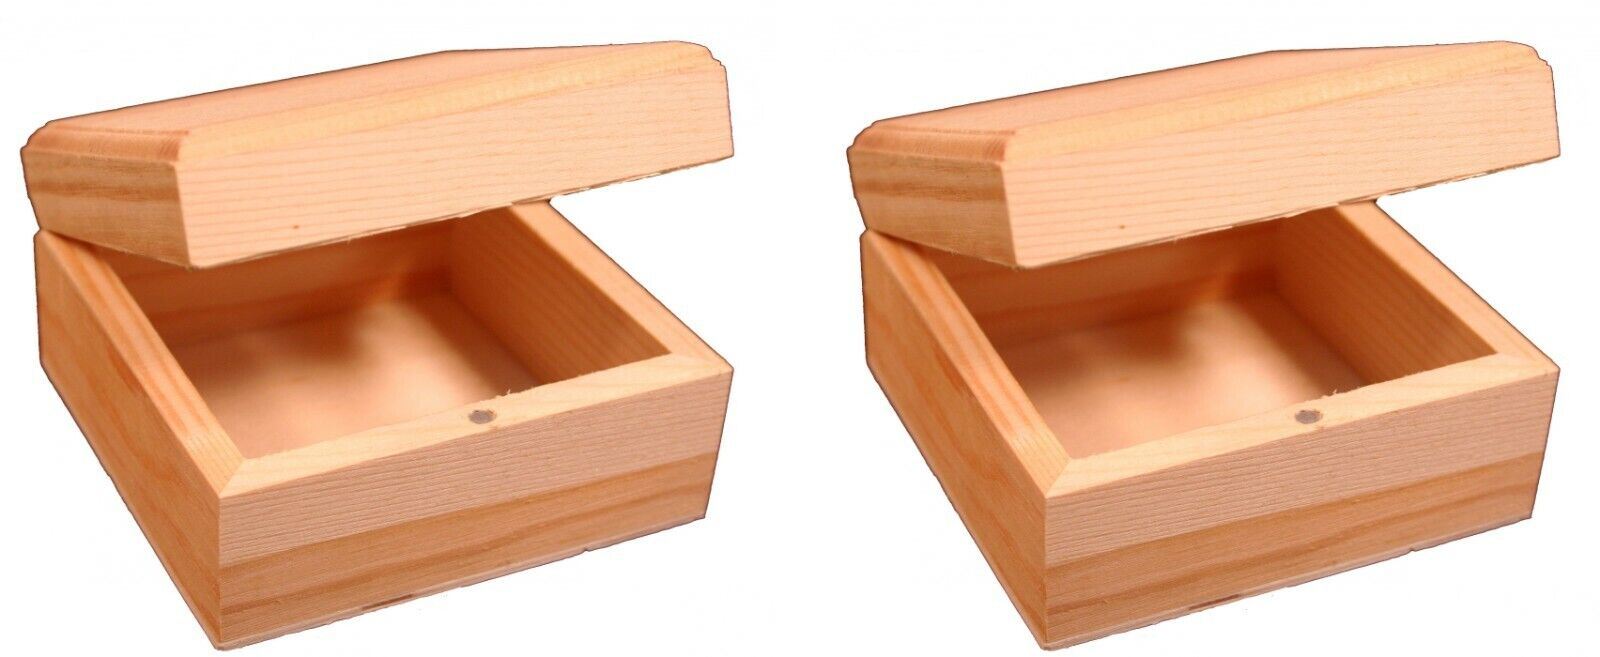 Mini Wood Craft Box 3.5 Inch, Unfinished, Hinged Lid and Magnetic Closure-2 pack Crafting Pieces